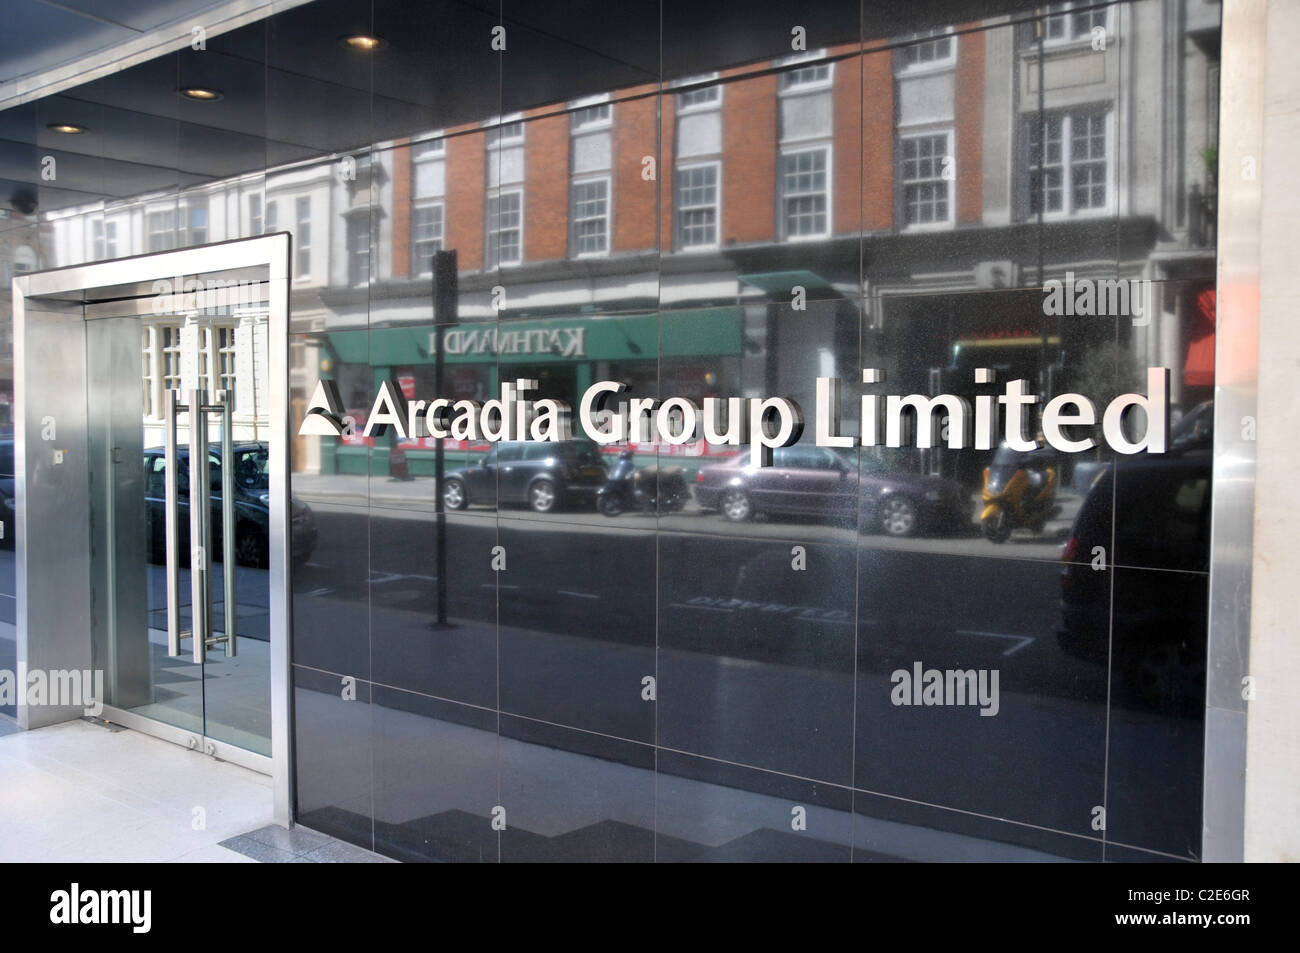 arcadia-group-limited-offices-berners-street-london-C2E6GR.jpg?profile=RESIZE_400x